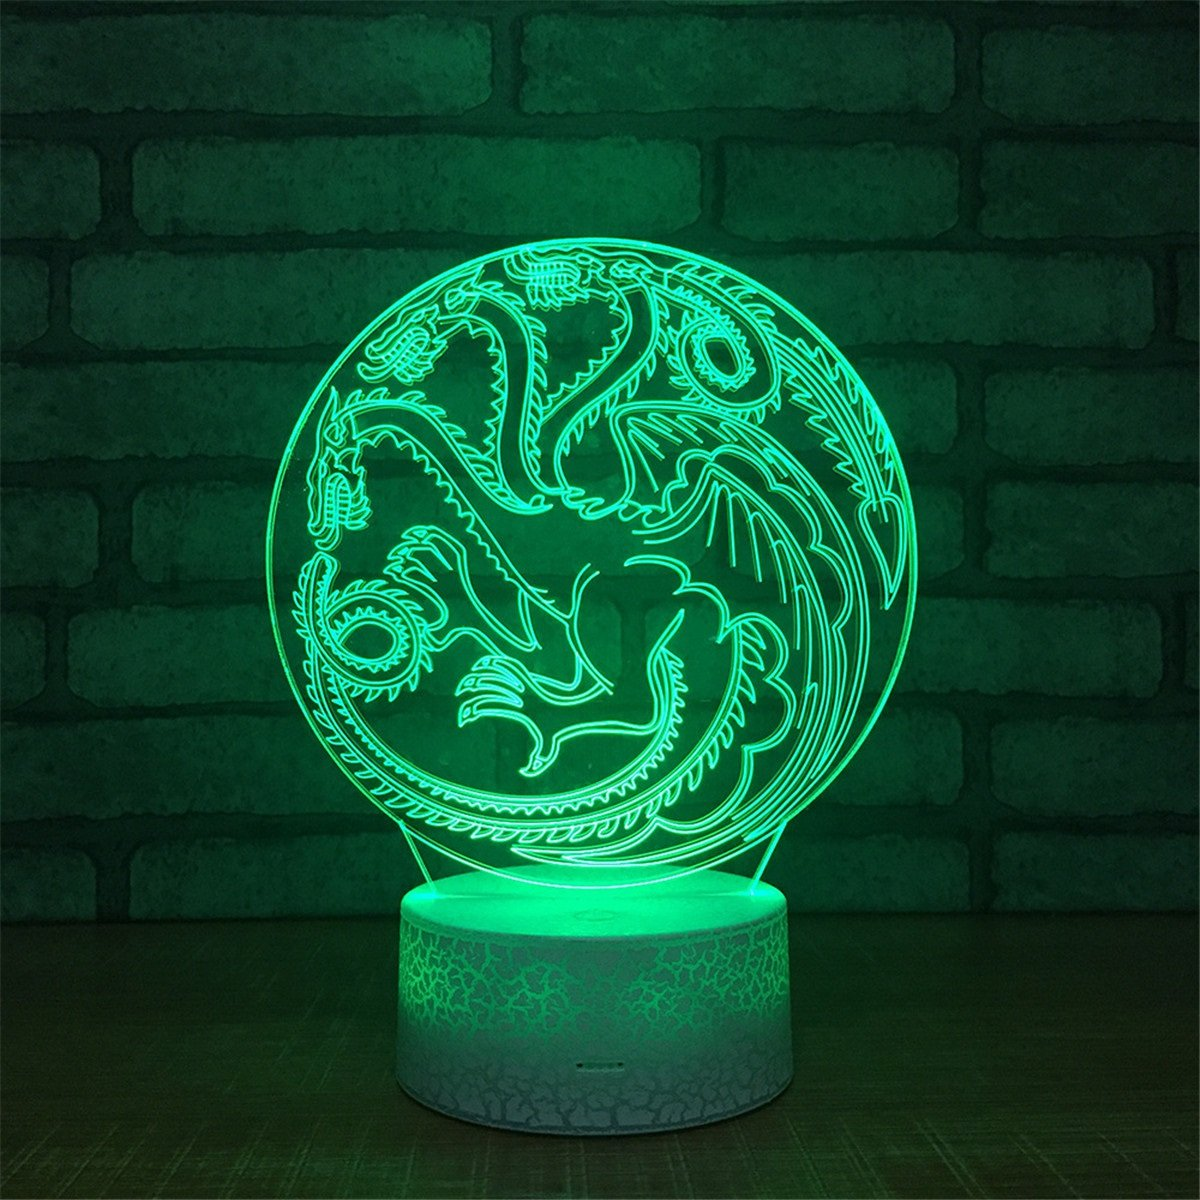 Cute Smart Touch Dragon 3D Touch Optical Illusion Night Light Crackle Paint Base 7 Colors Changing Beside Table Desk Deco Lamp Bedroom Nightlight Lighting Effects Birthday